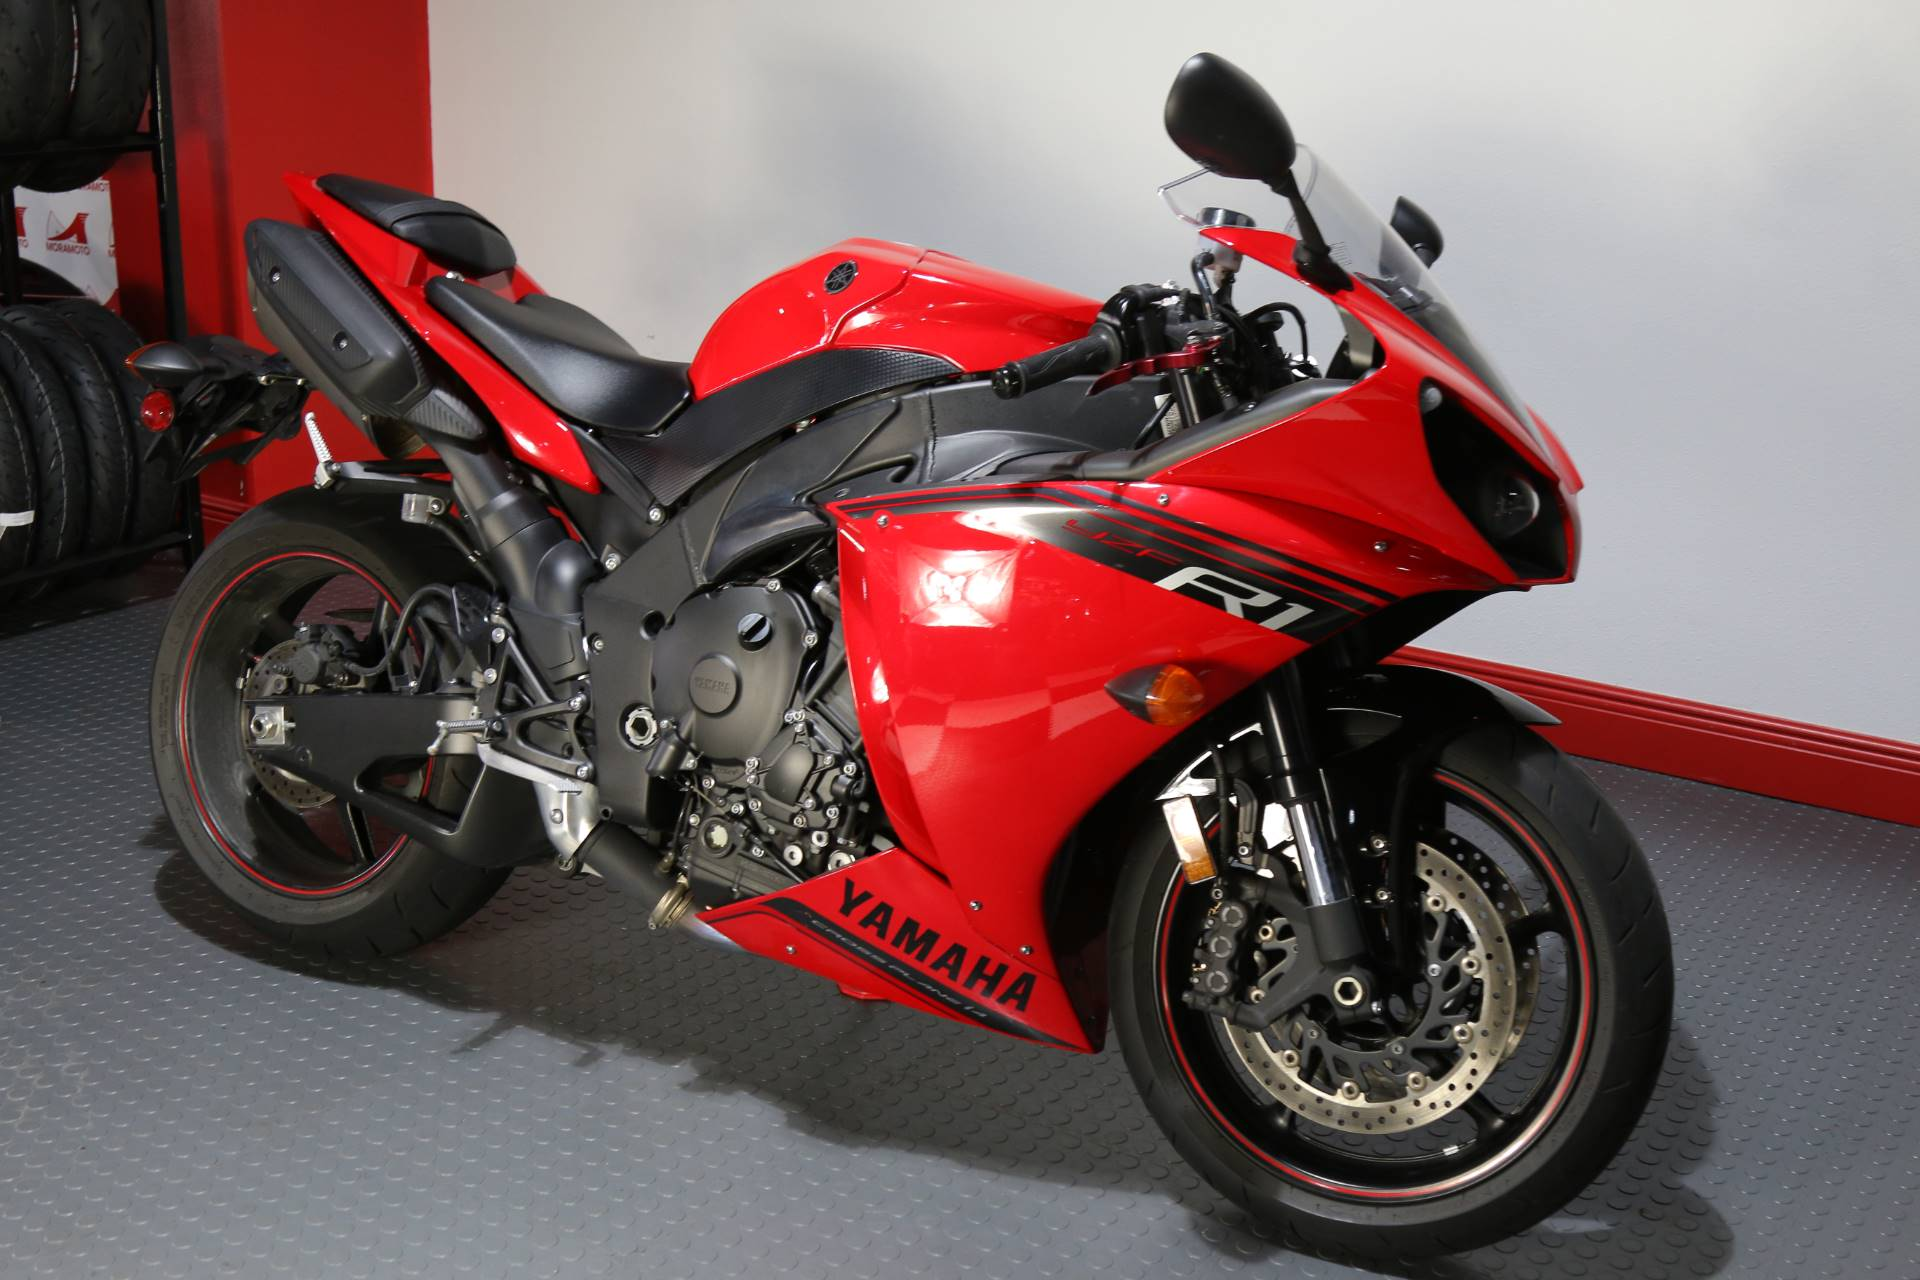 Used 2014 Yamaha YZF-R1 Motorcycles in Pinellas Park, FL